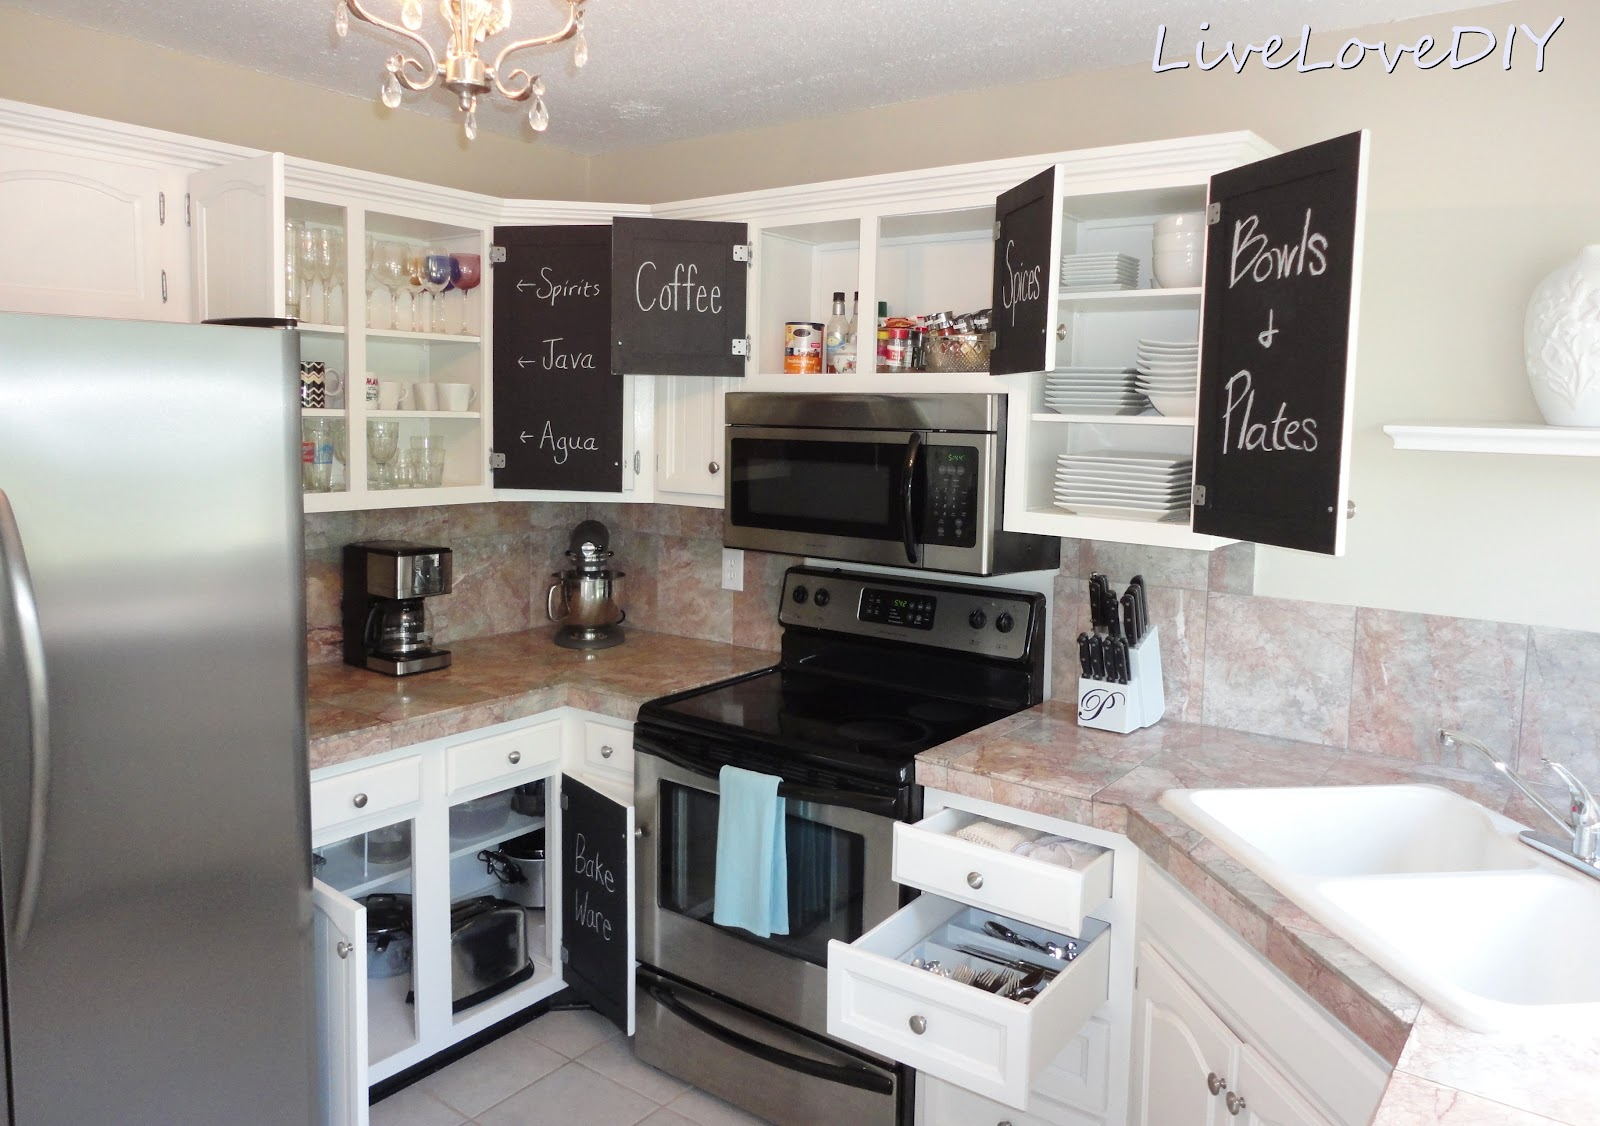 Chalk Paint Kitchen Cabinets Of Livelovediy The Chalkboard Paint Kitchen Cabinet Makeover